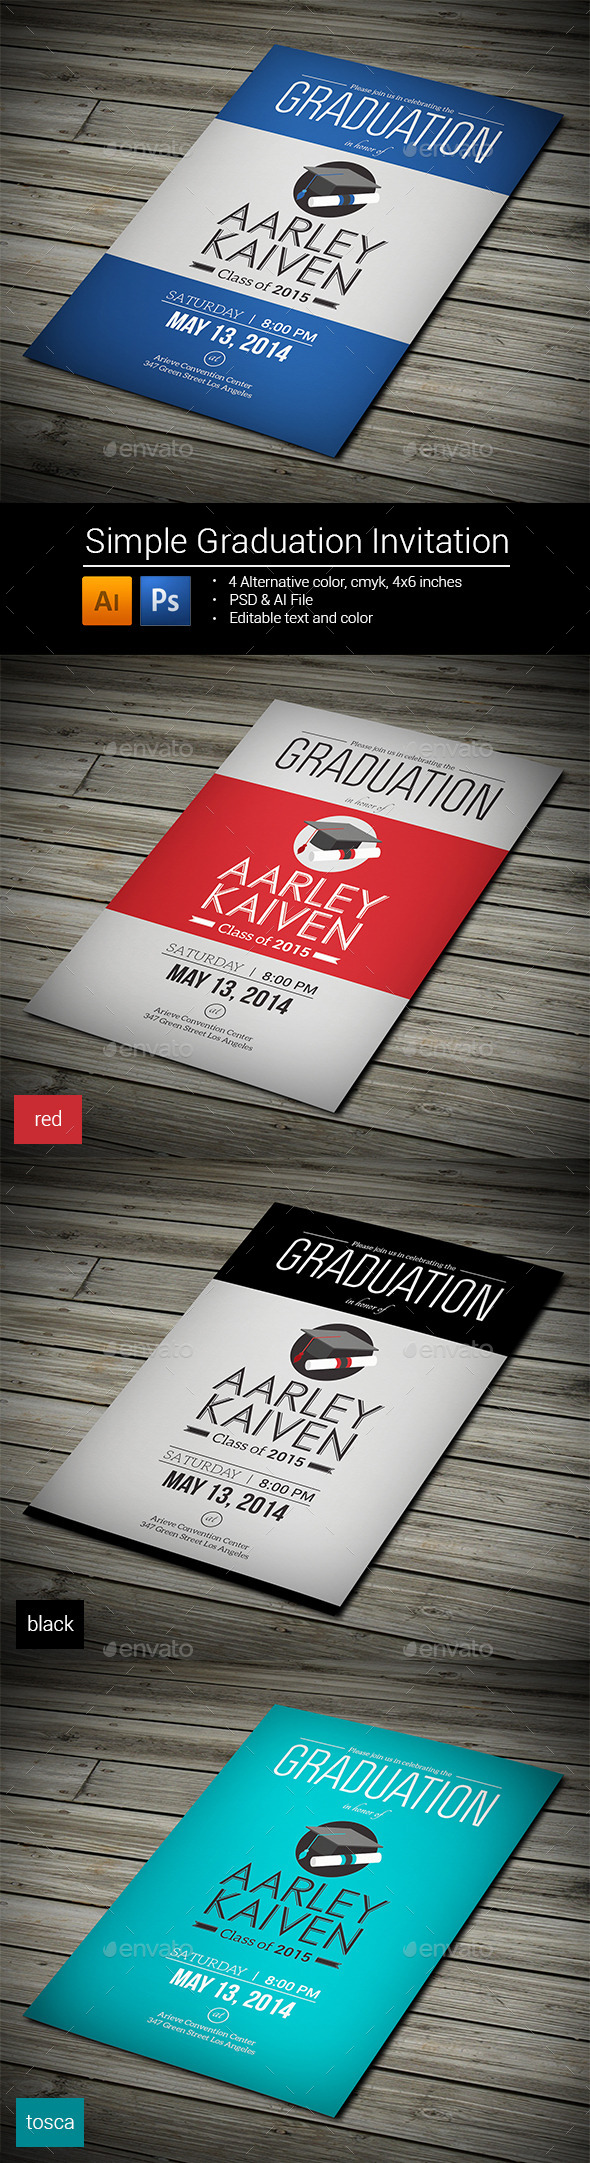 GraphicRiver Simple Graduation Invitation 8993243